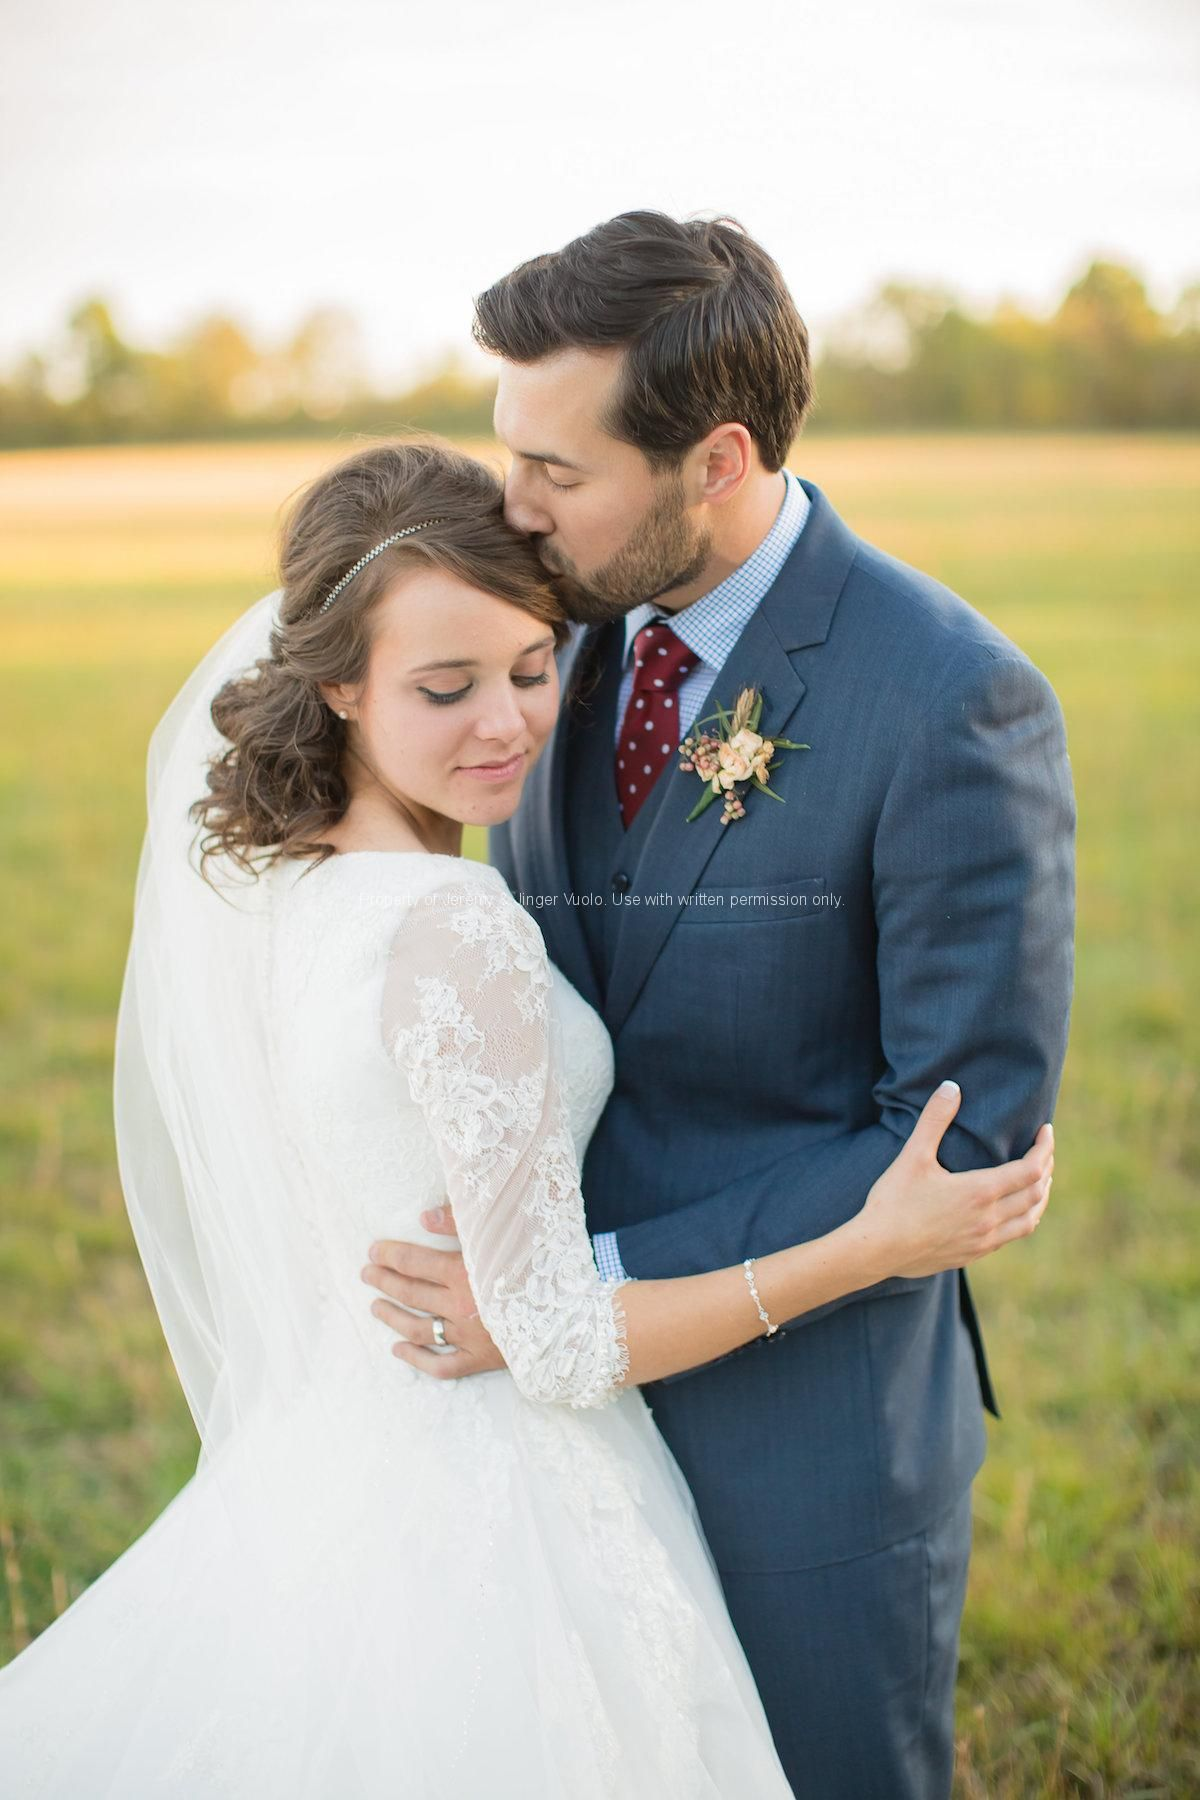 Our wedding day jeremy and jinger wedding loves pinterest